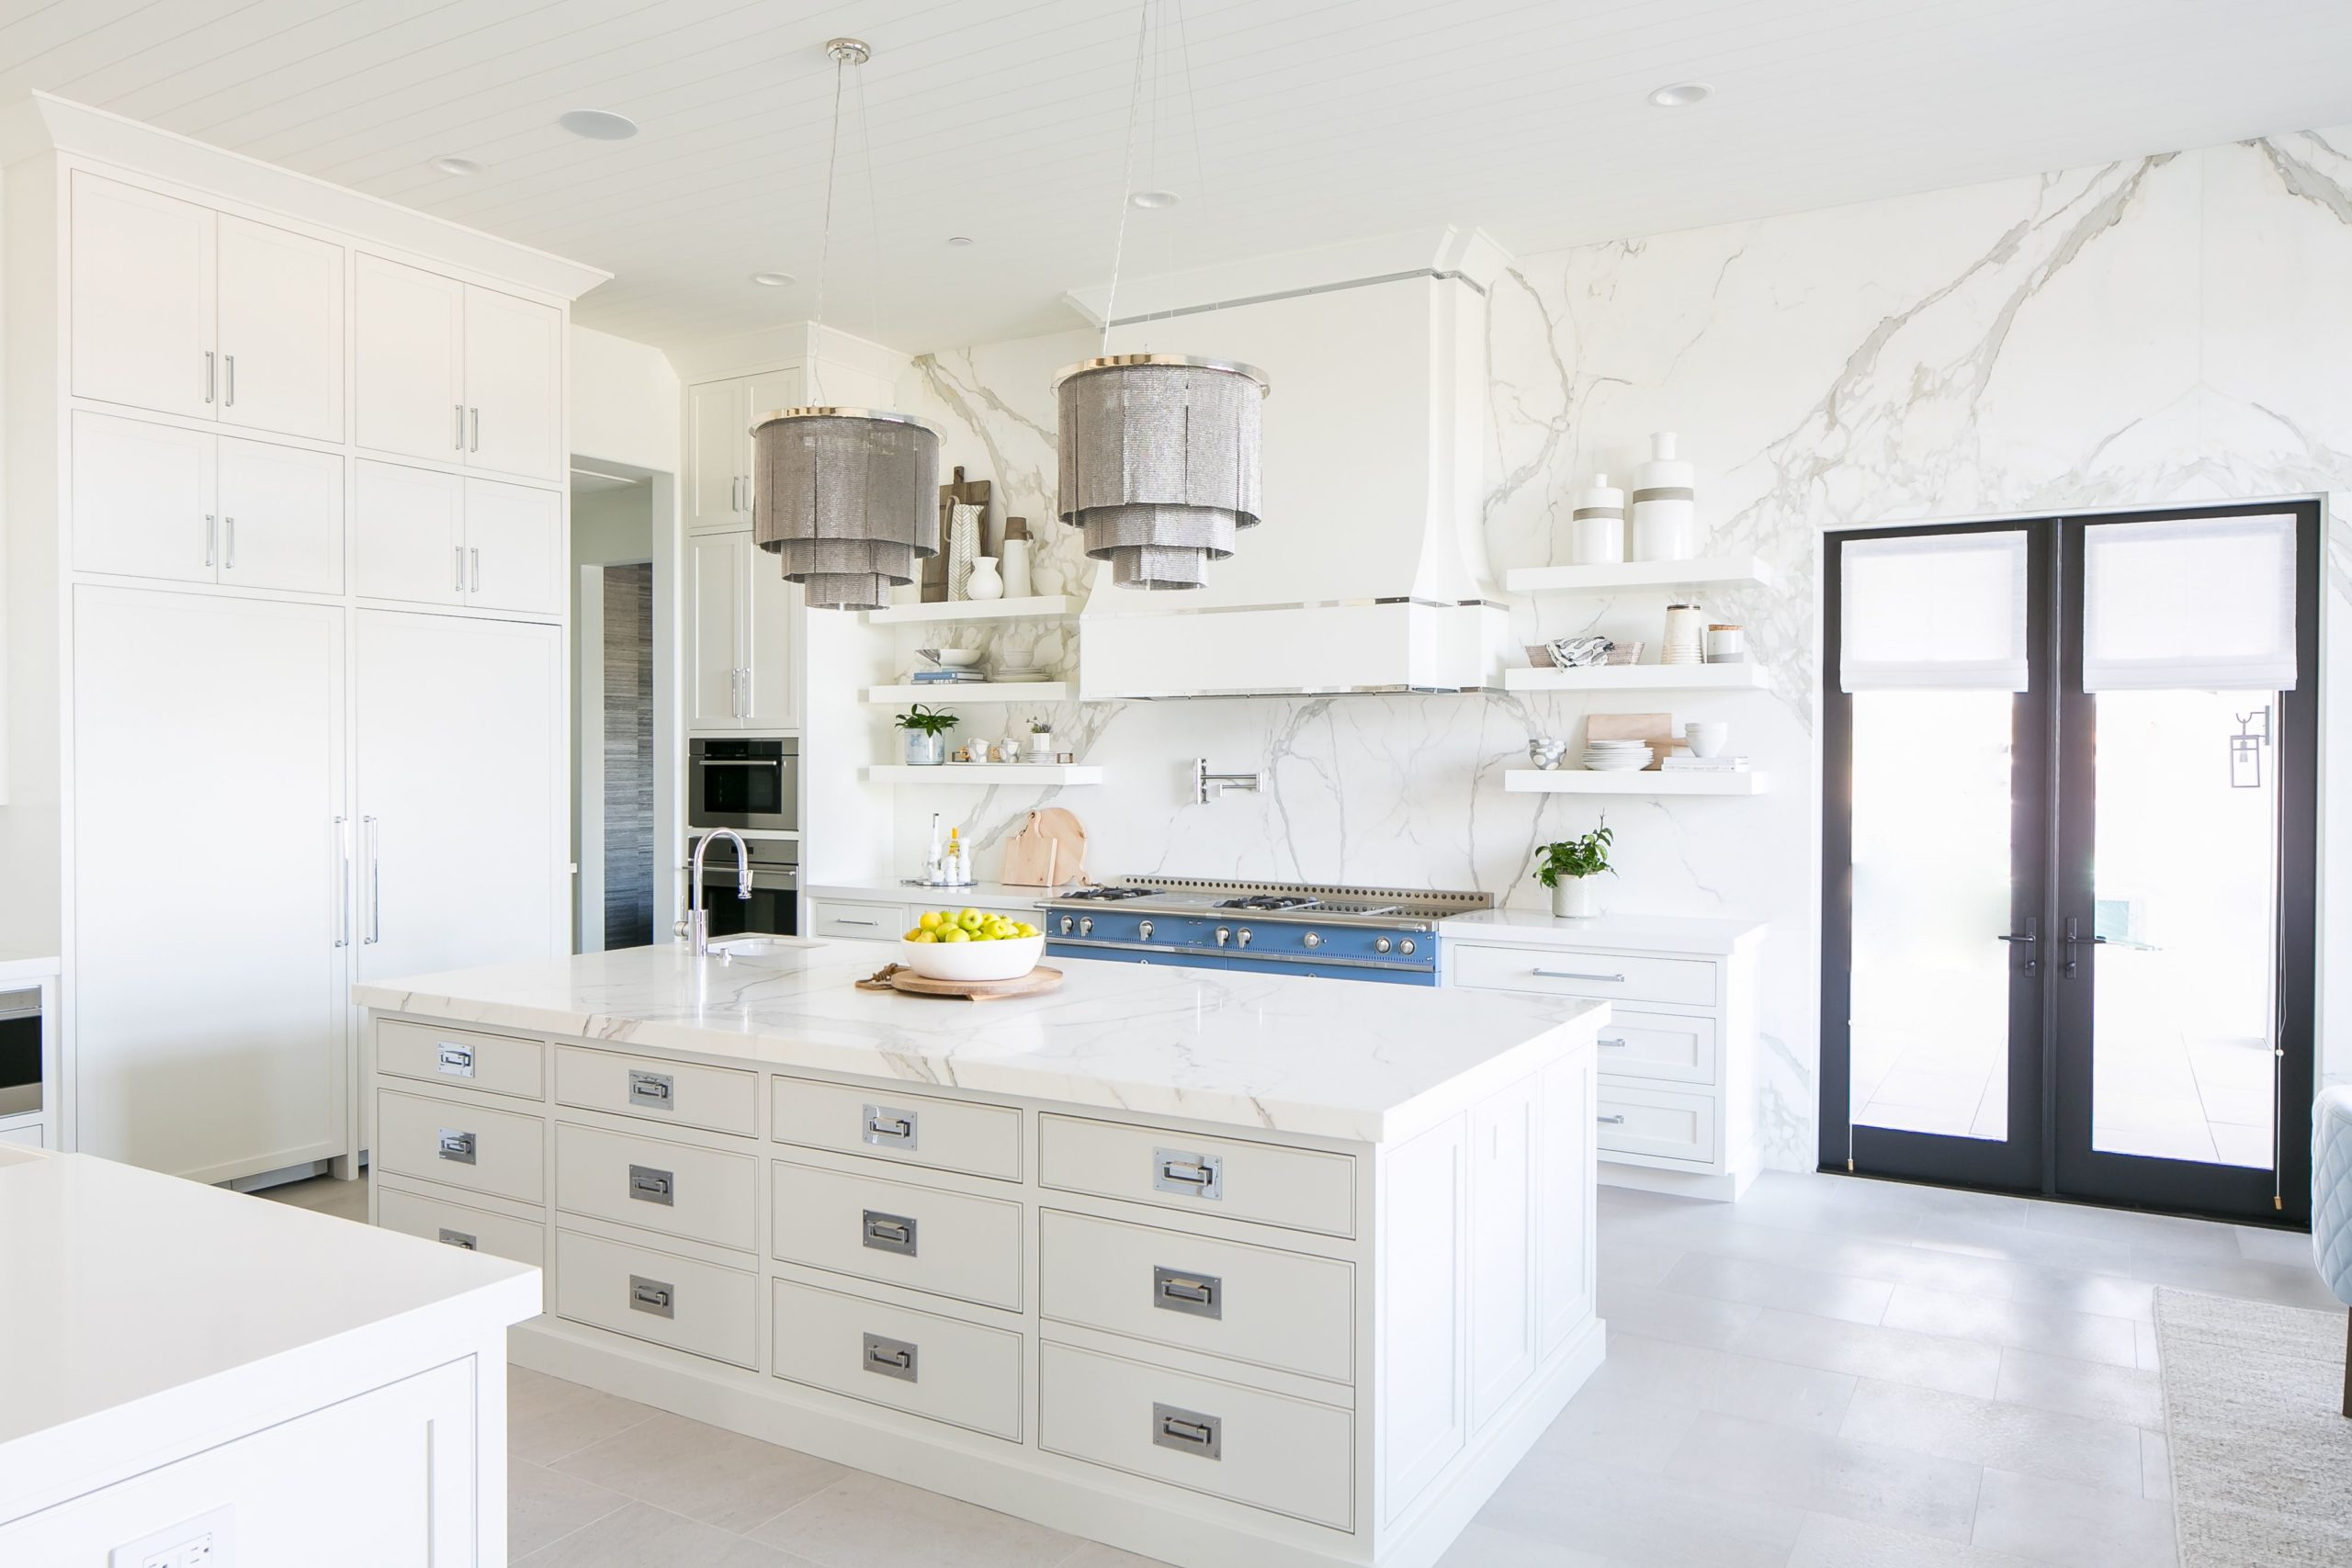 Simple Tips to Decorate the Open Kitchen Ideas for An Airy Cooking Space